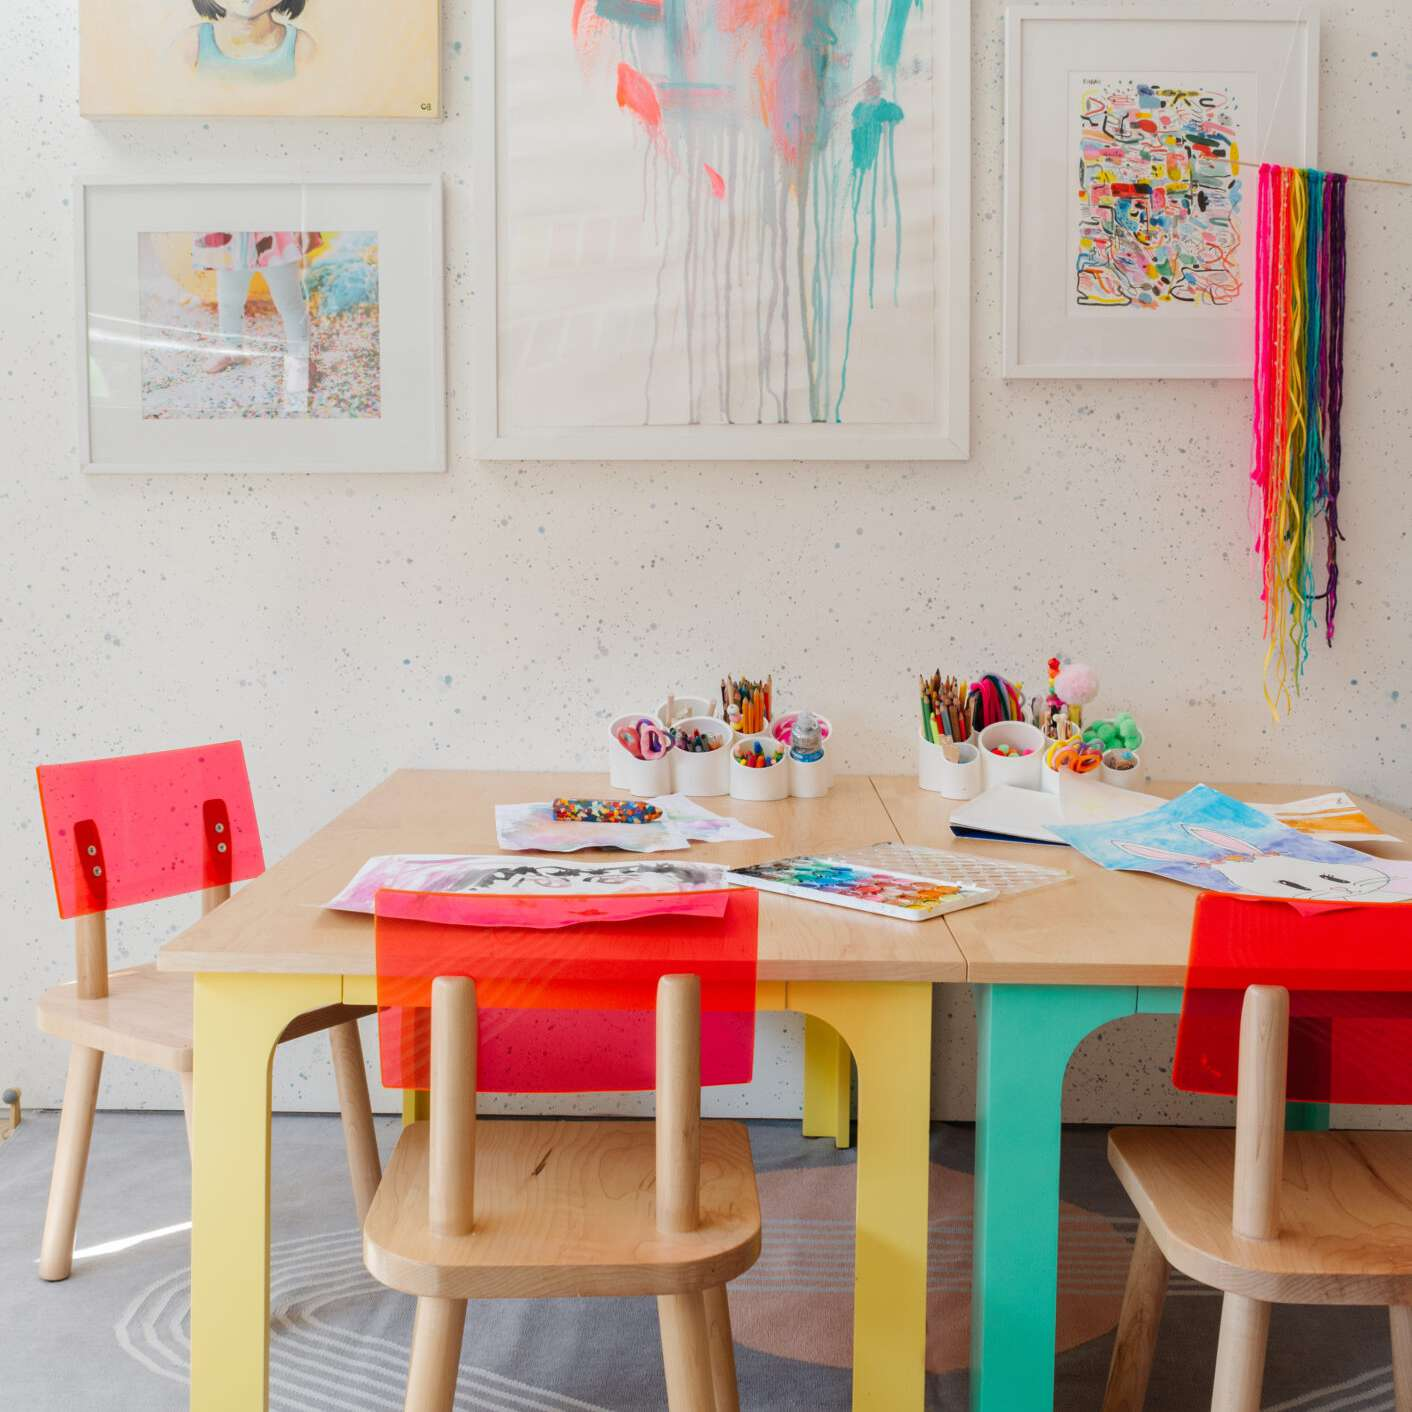 A kids' craft room filled with colorful chairs